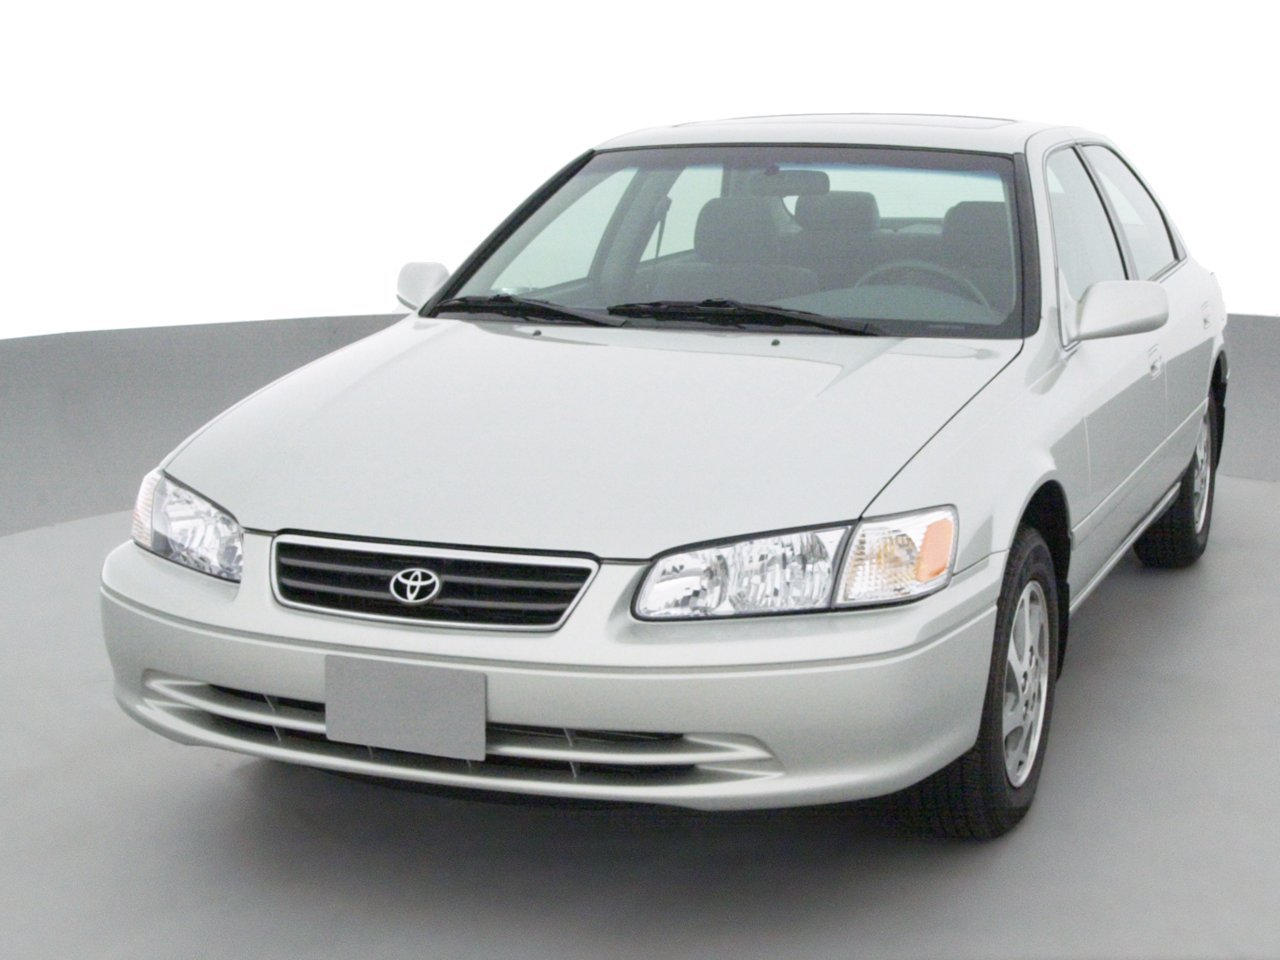 2001 Toyota Camry Reviews Images And Specs Vehicles Fuel Filter Ce 4 Door Sedan Automatic Transmission Gs